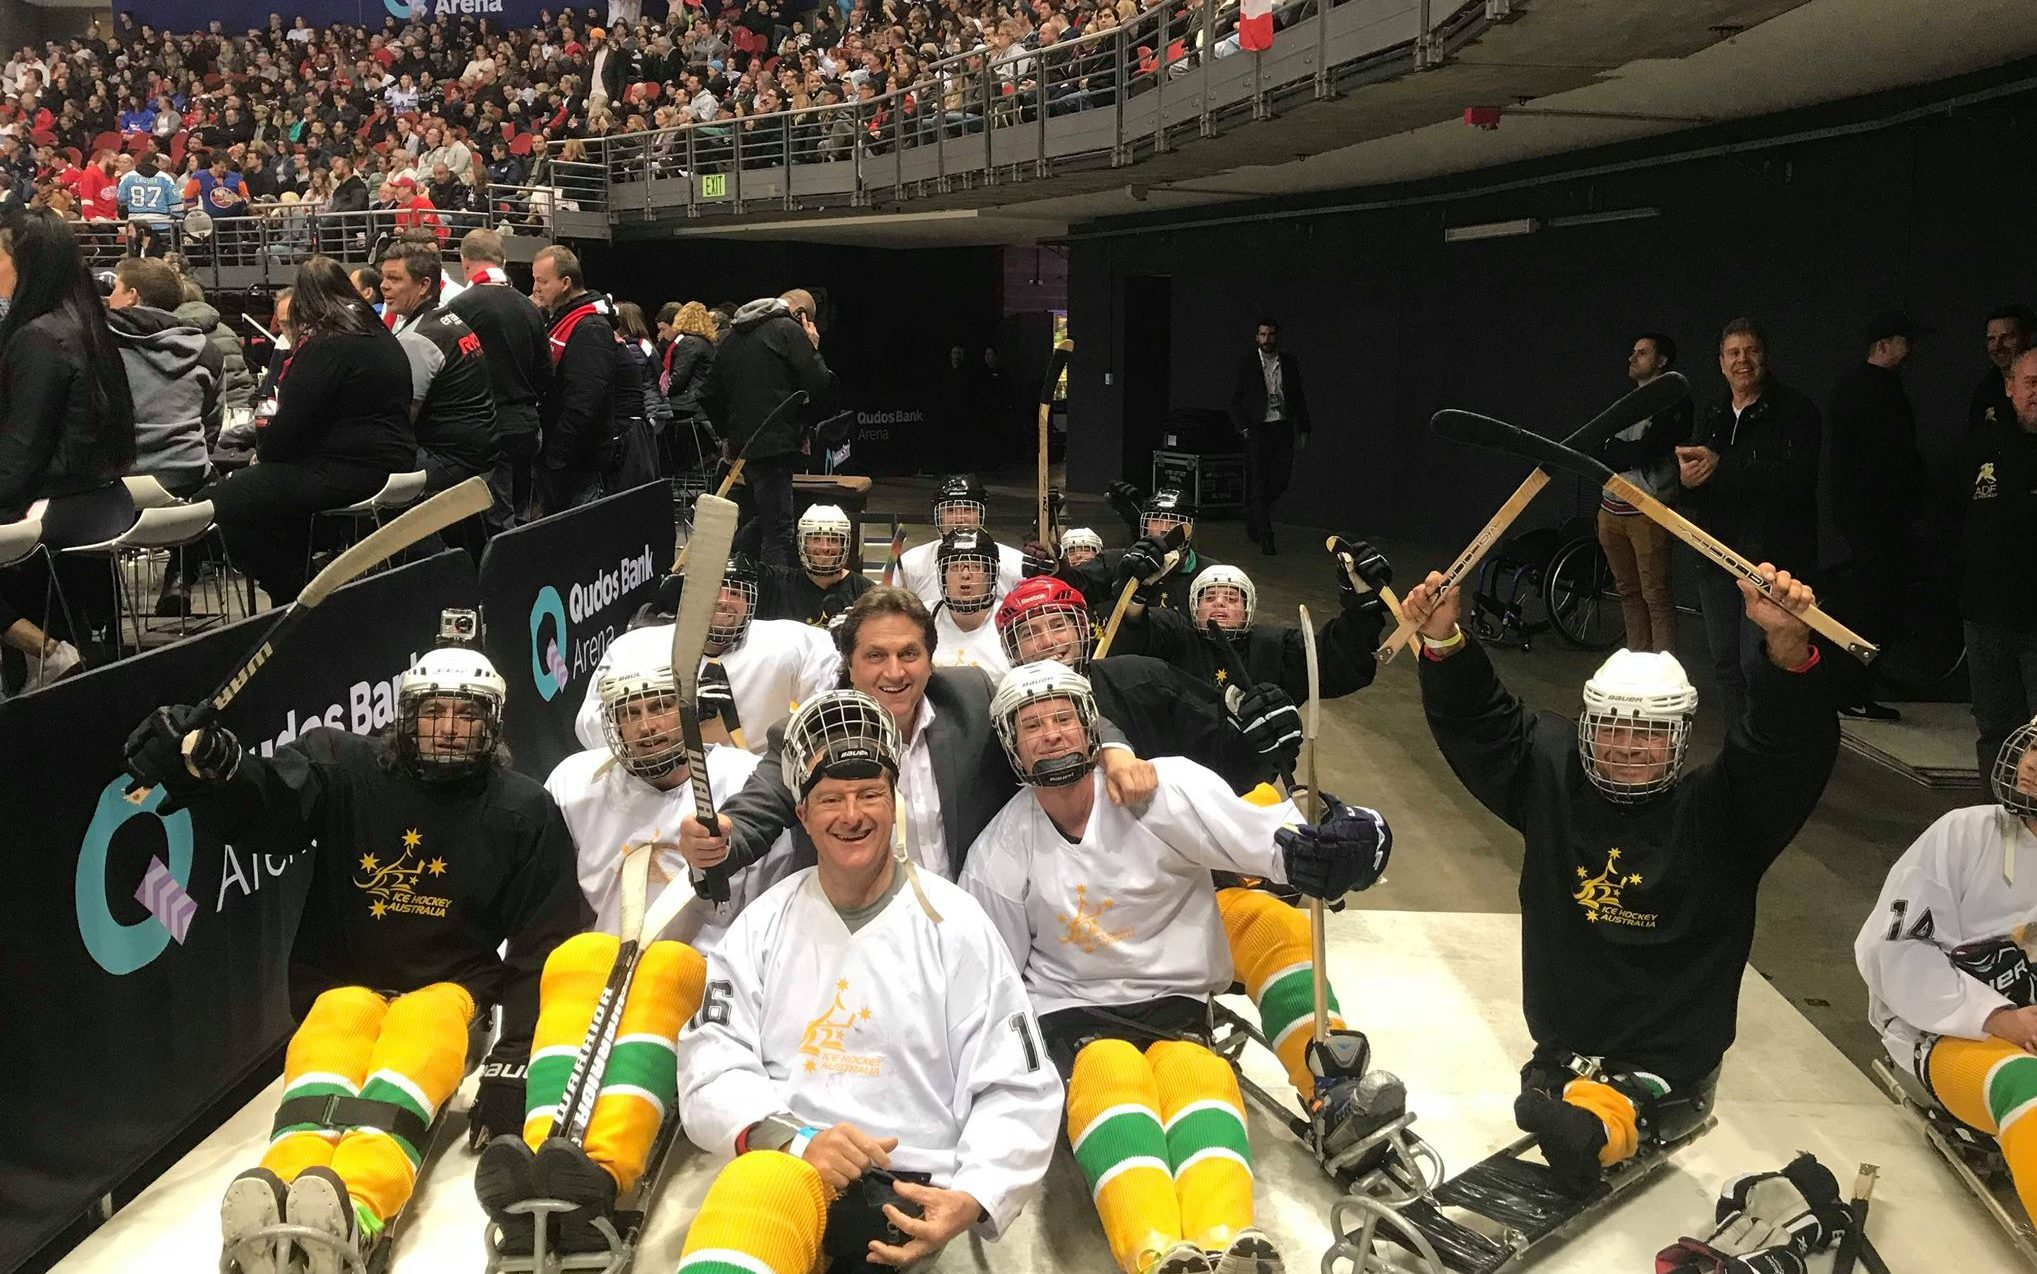 Para-ice hockey stars put on a show in Sydney